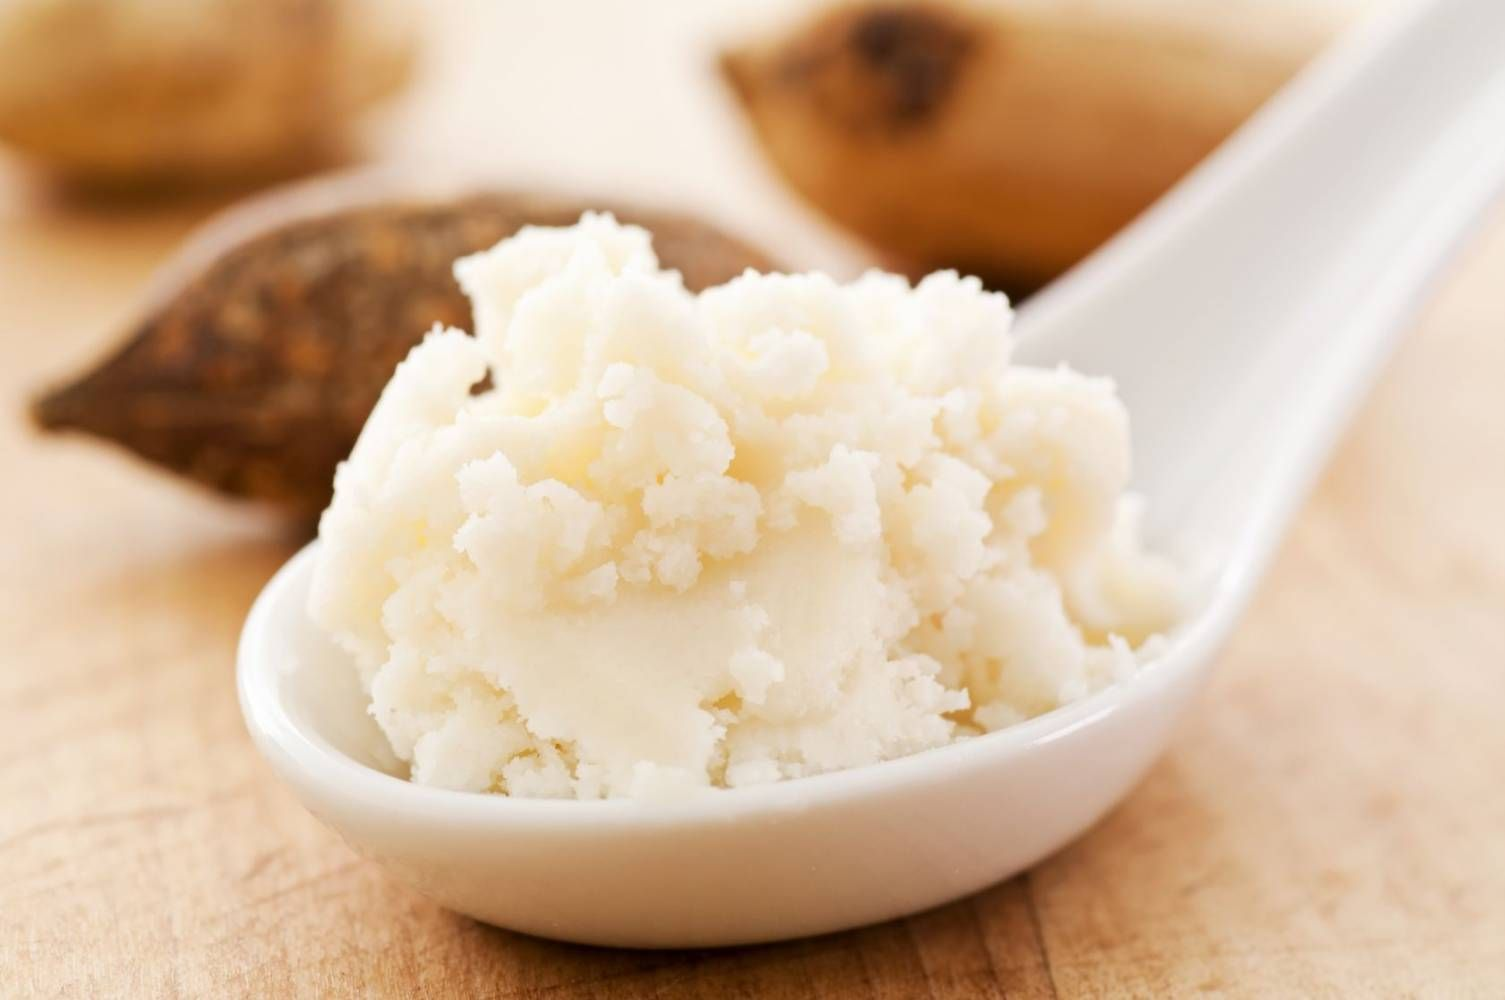 Top Four Benefits and Uses of Shea Butter for Summer Skin Care